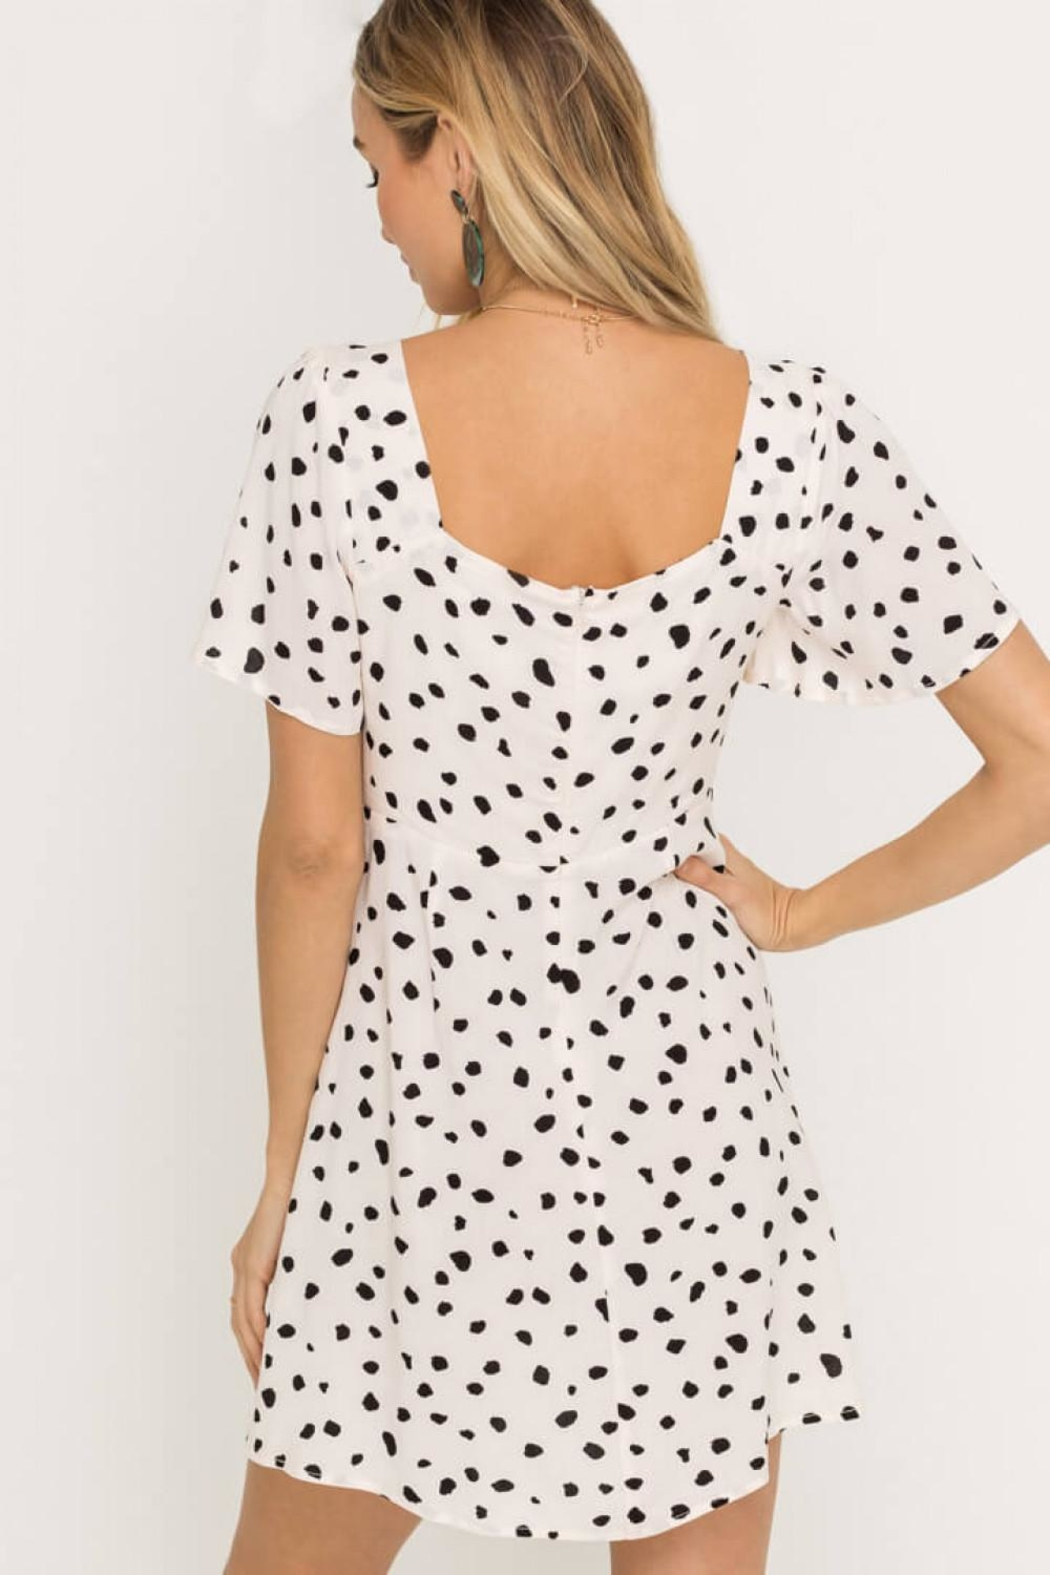 Lush Clothing  Speckled Front-Tie Mini-Dress - Side Cropped Image